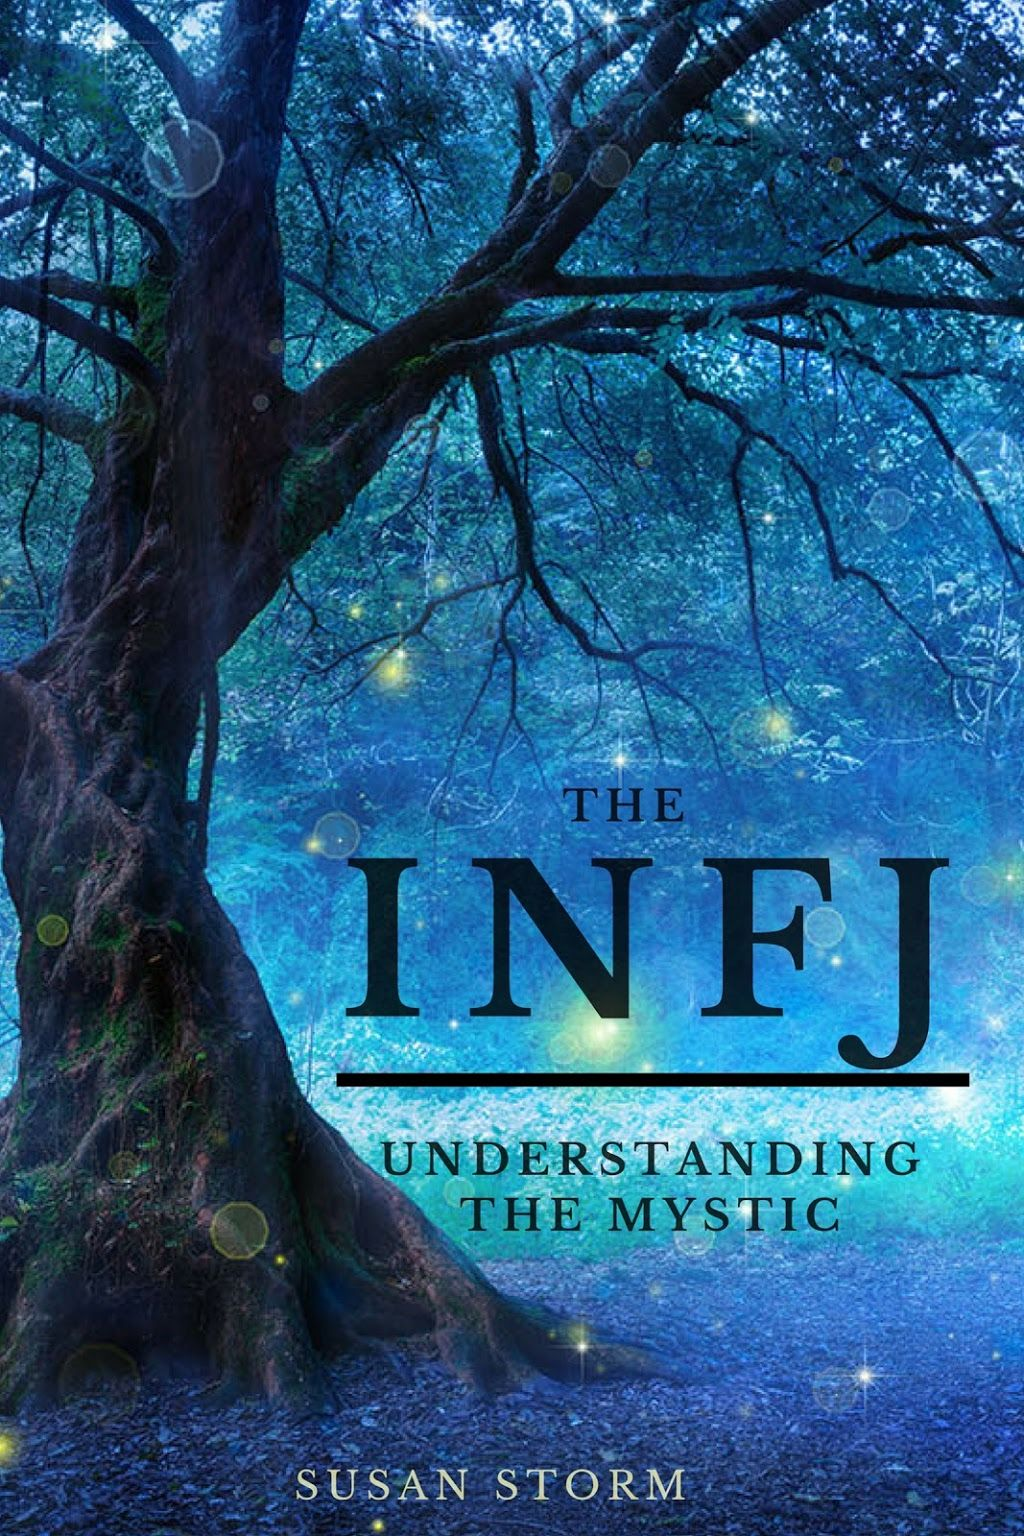 Explore The Wonders And Mysteries Of The Infj Life In